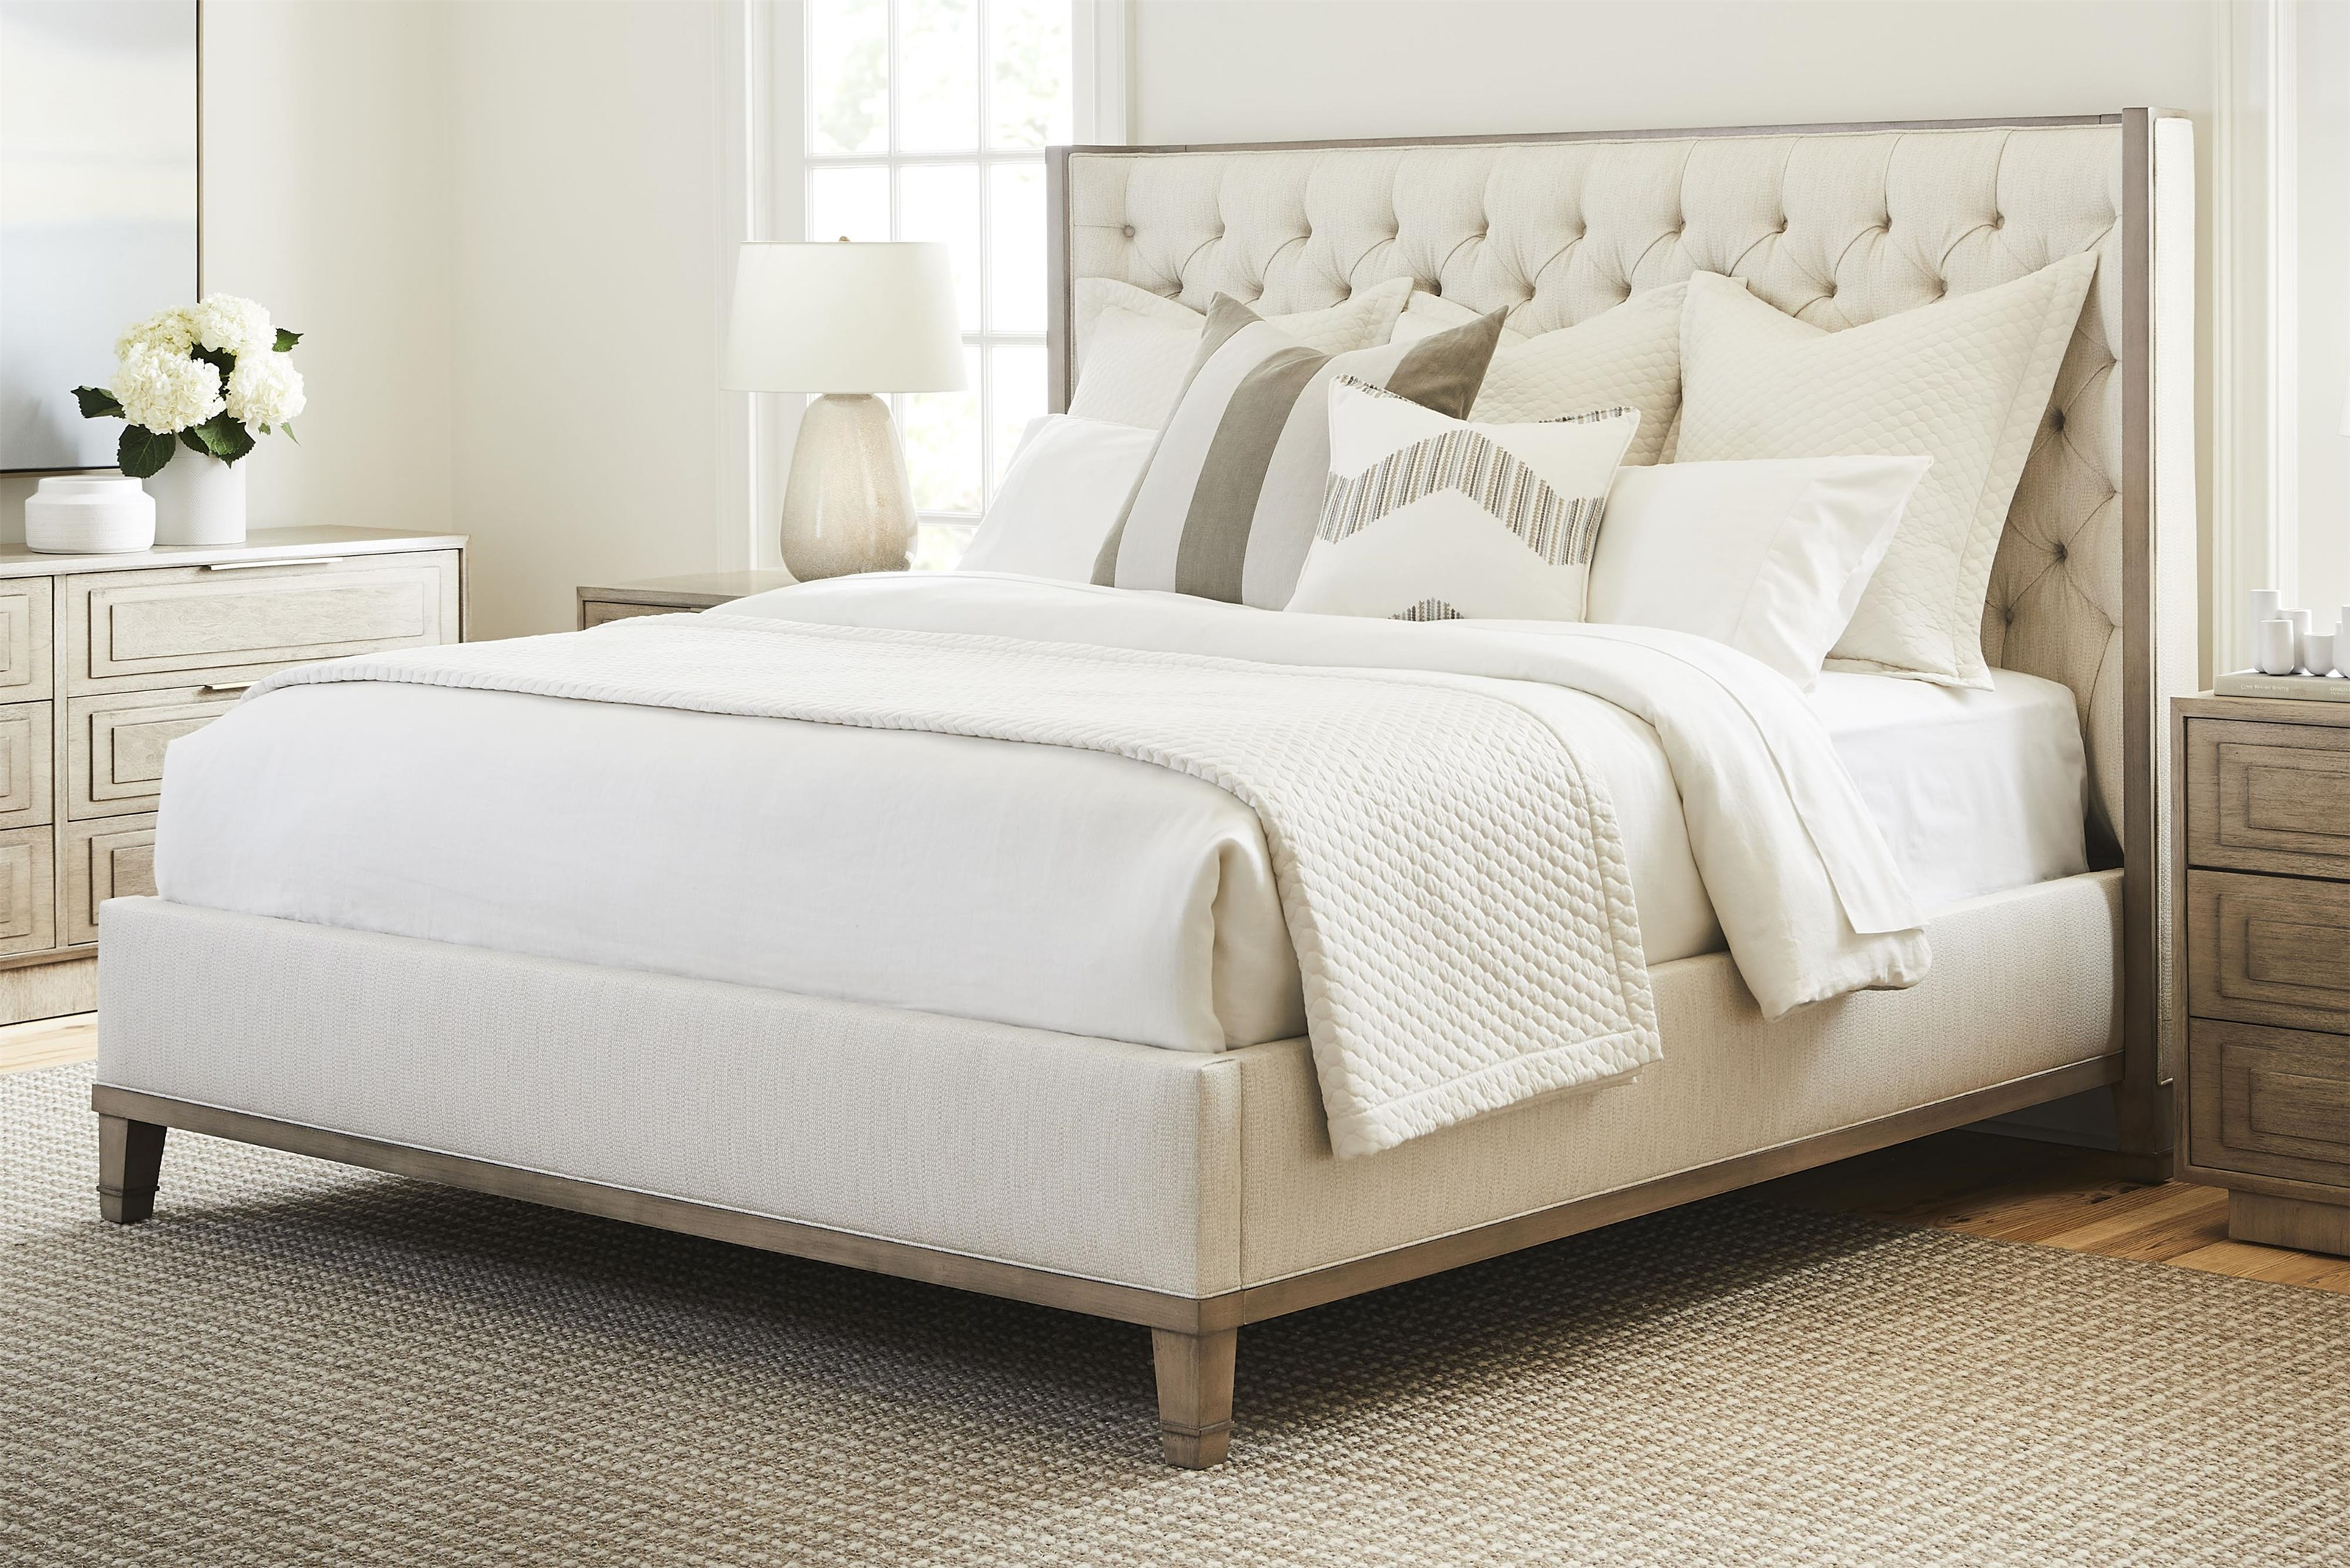 Bowers - Michael Weiss Queen Tufted Headboard Bed by Vanguard Furniture at Baer's Furniture